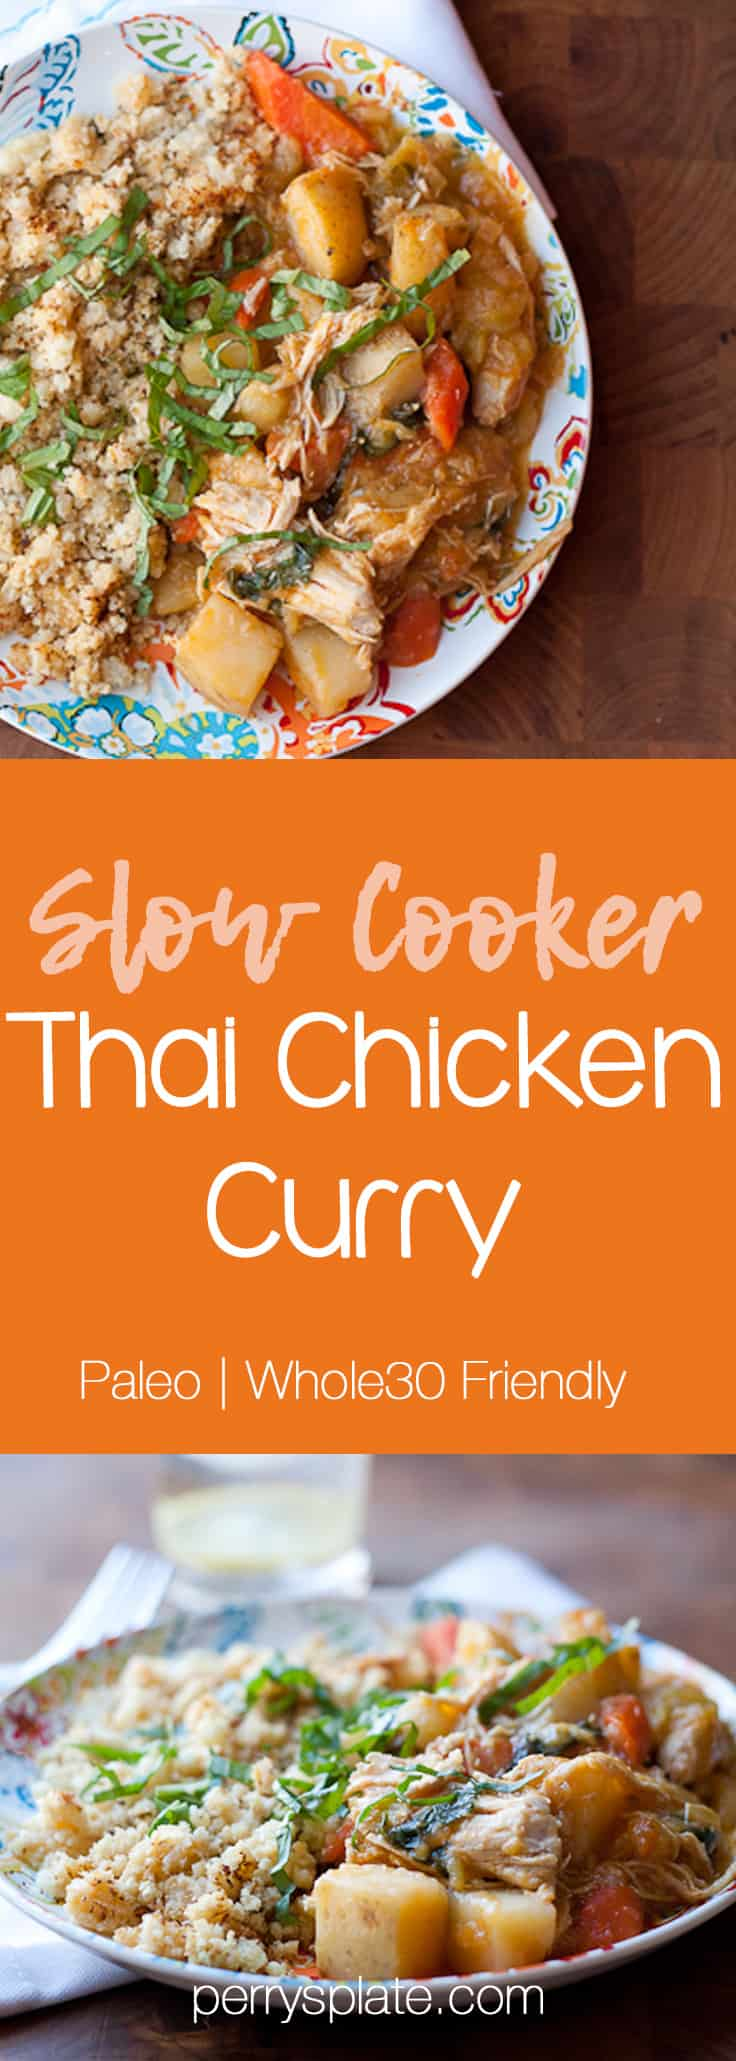 Slow Cooker Thai Chicken Curry | paleo recipes | Whole30 recipes | crock pot recipes | gluten-free recipes | Thai recipes | perrysplate.com